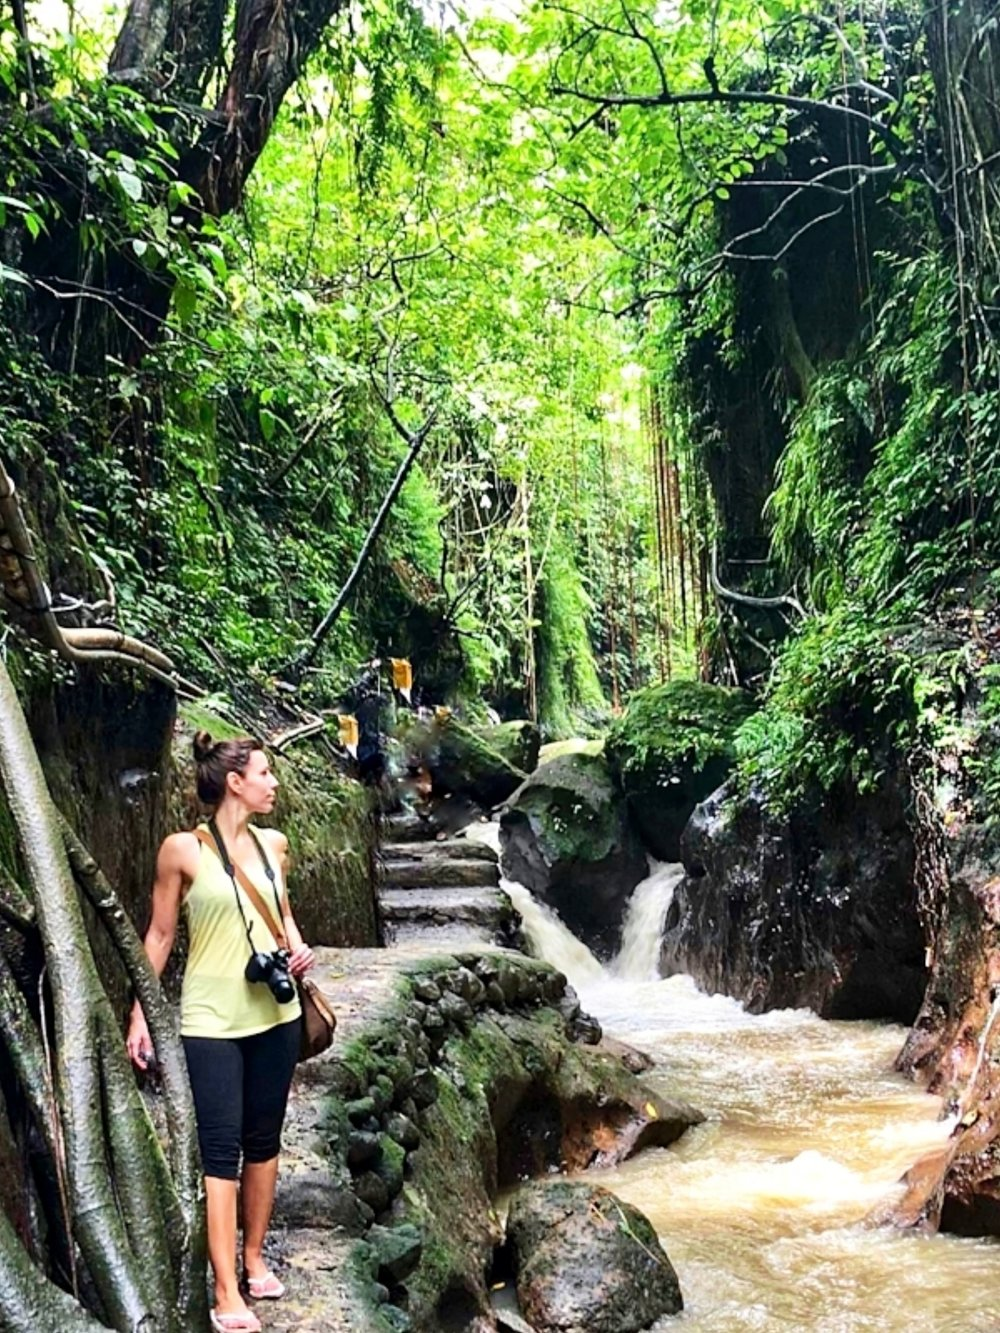 So many forests and jungles to explore in Bali